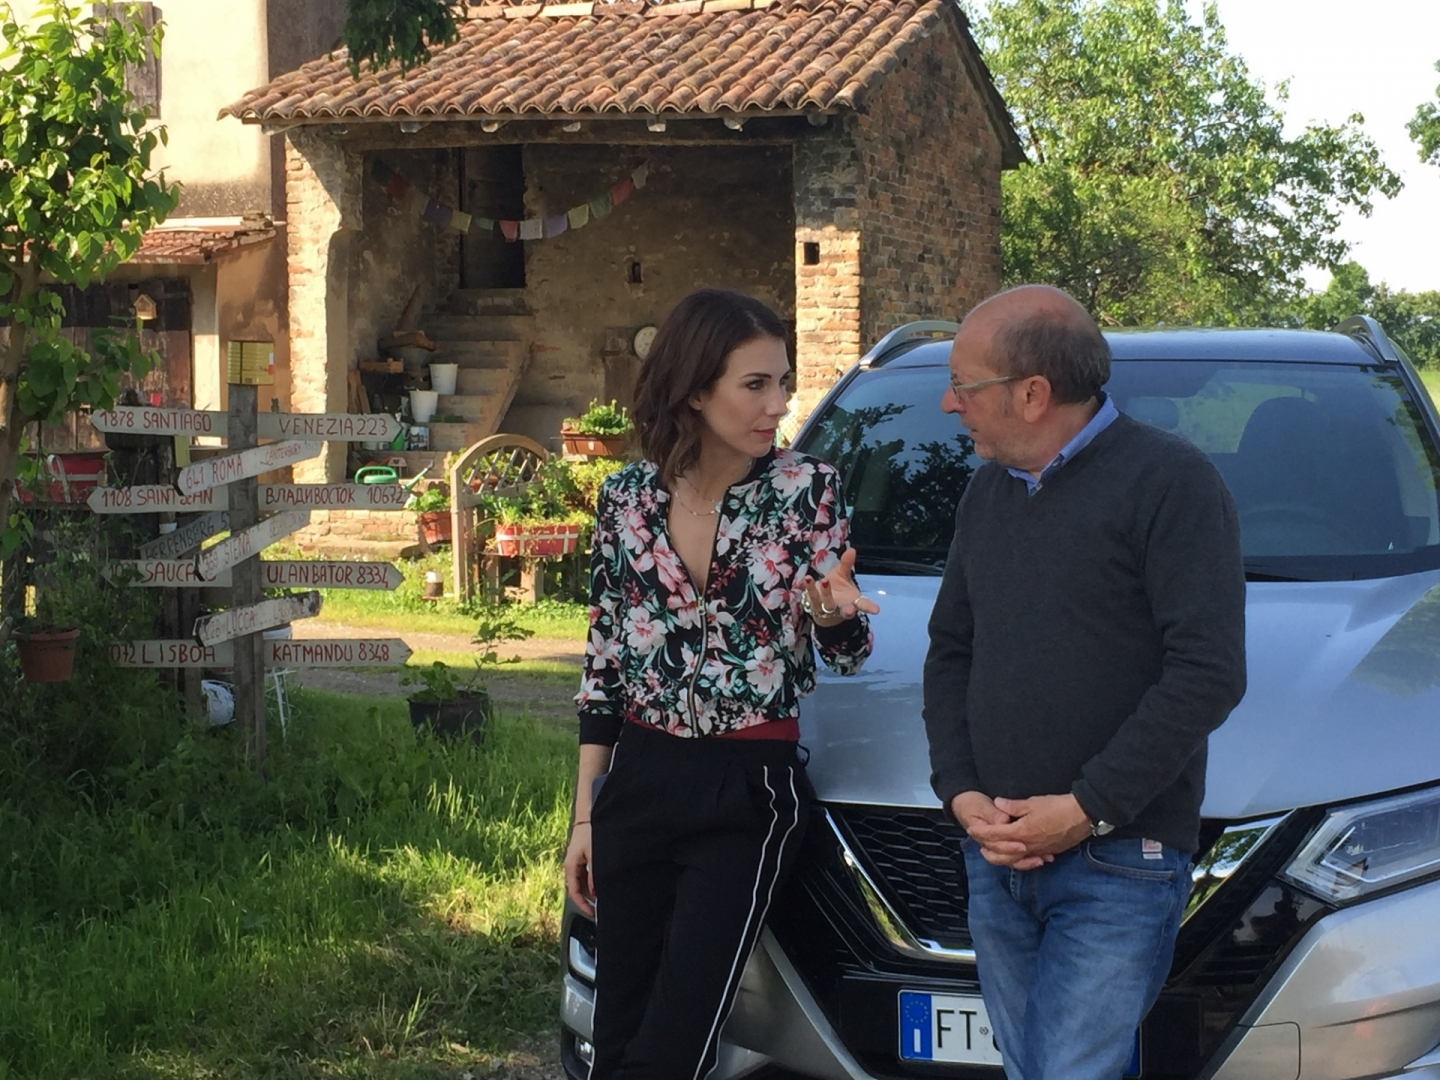 SkyWeek, 13 - 19 Settembre 2020 sui canali Sky e in streaming NOW TV